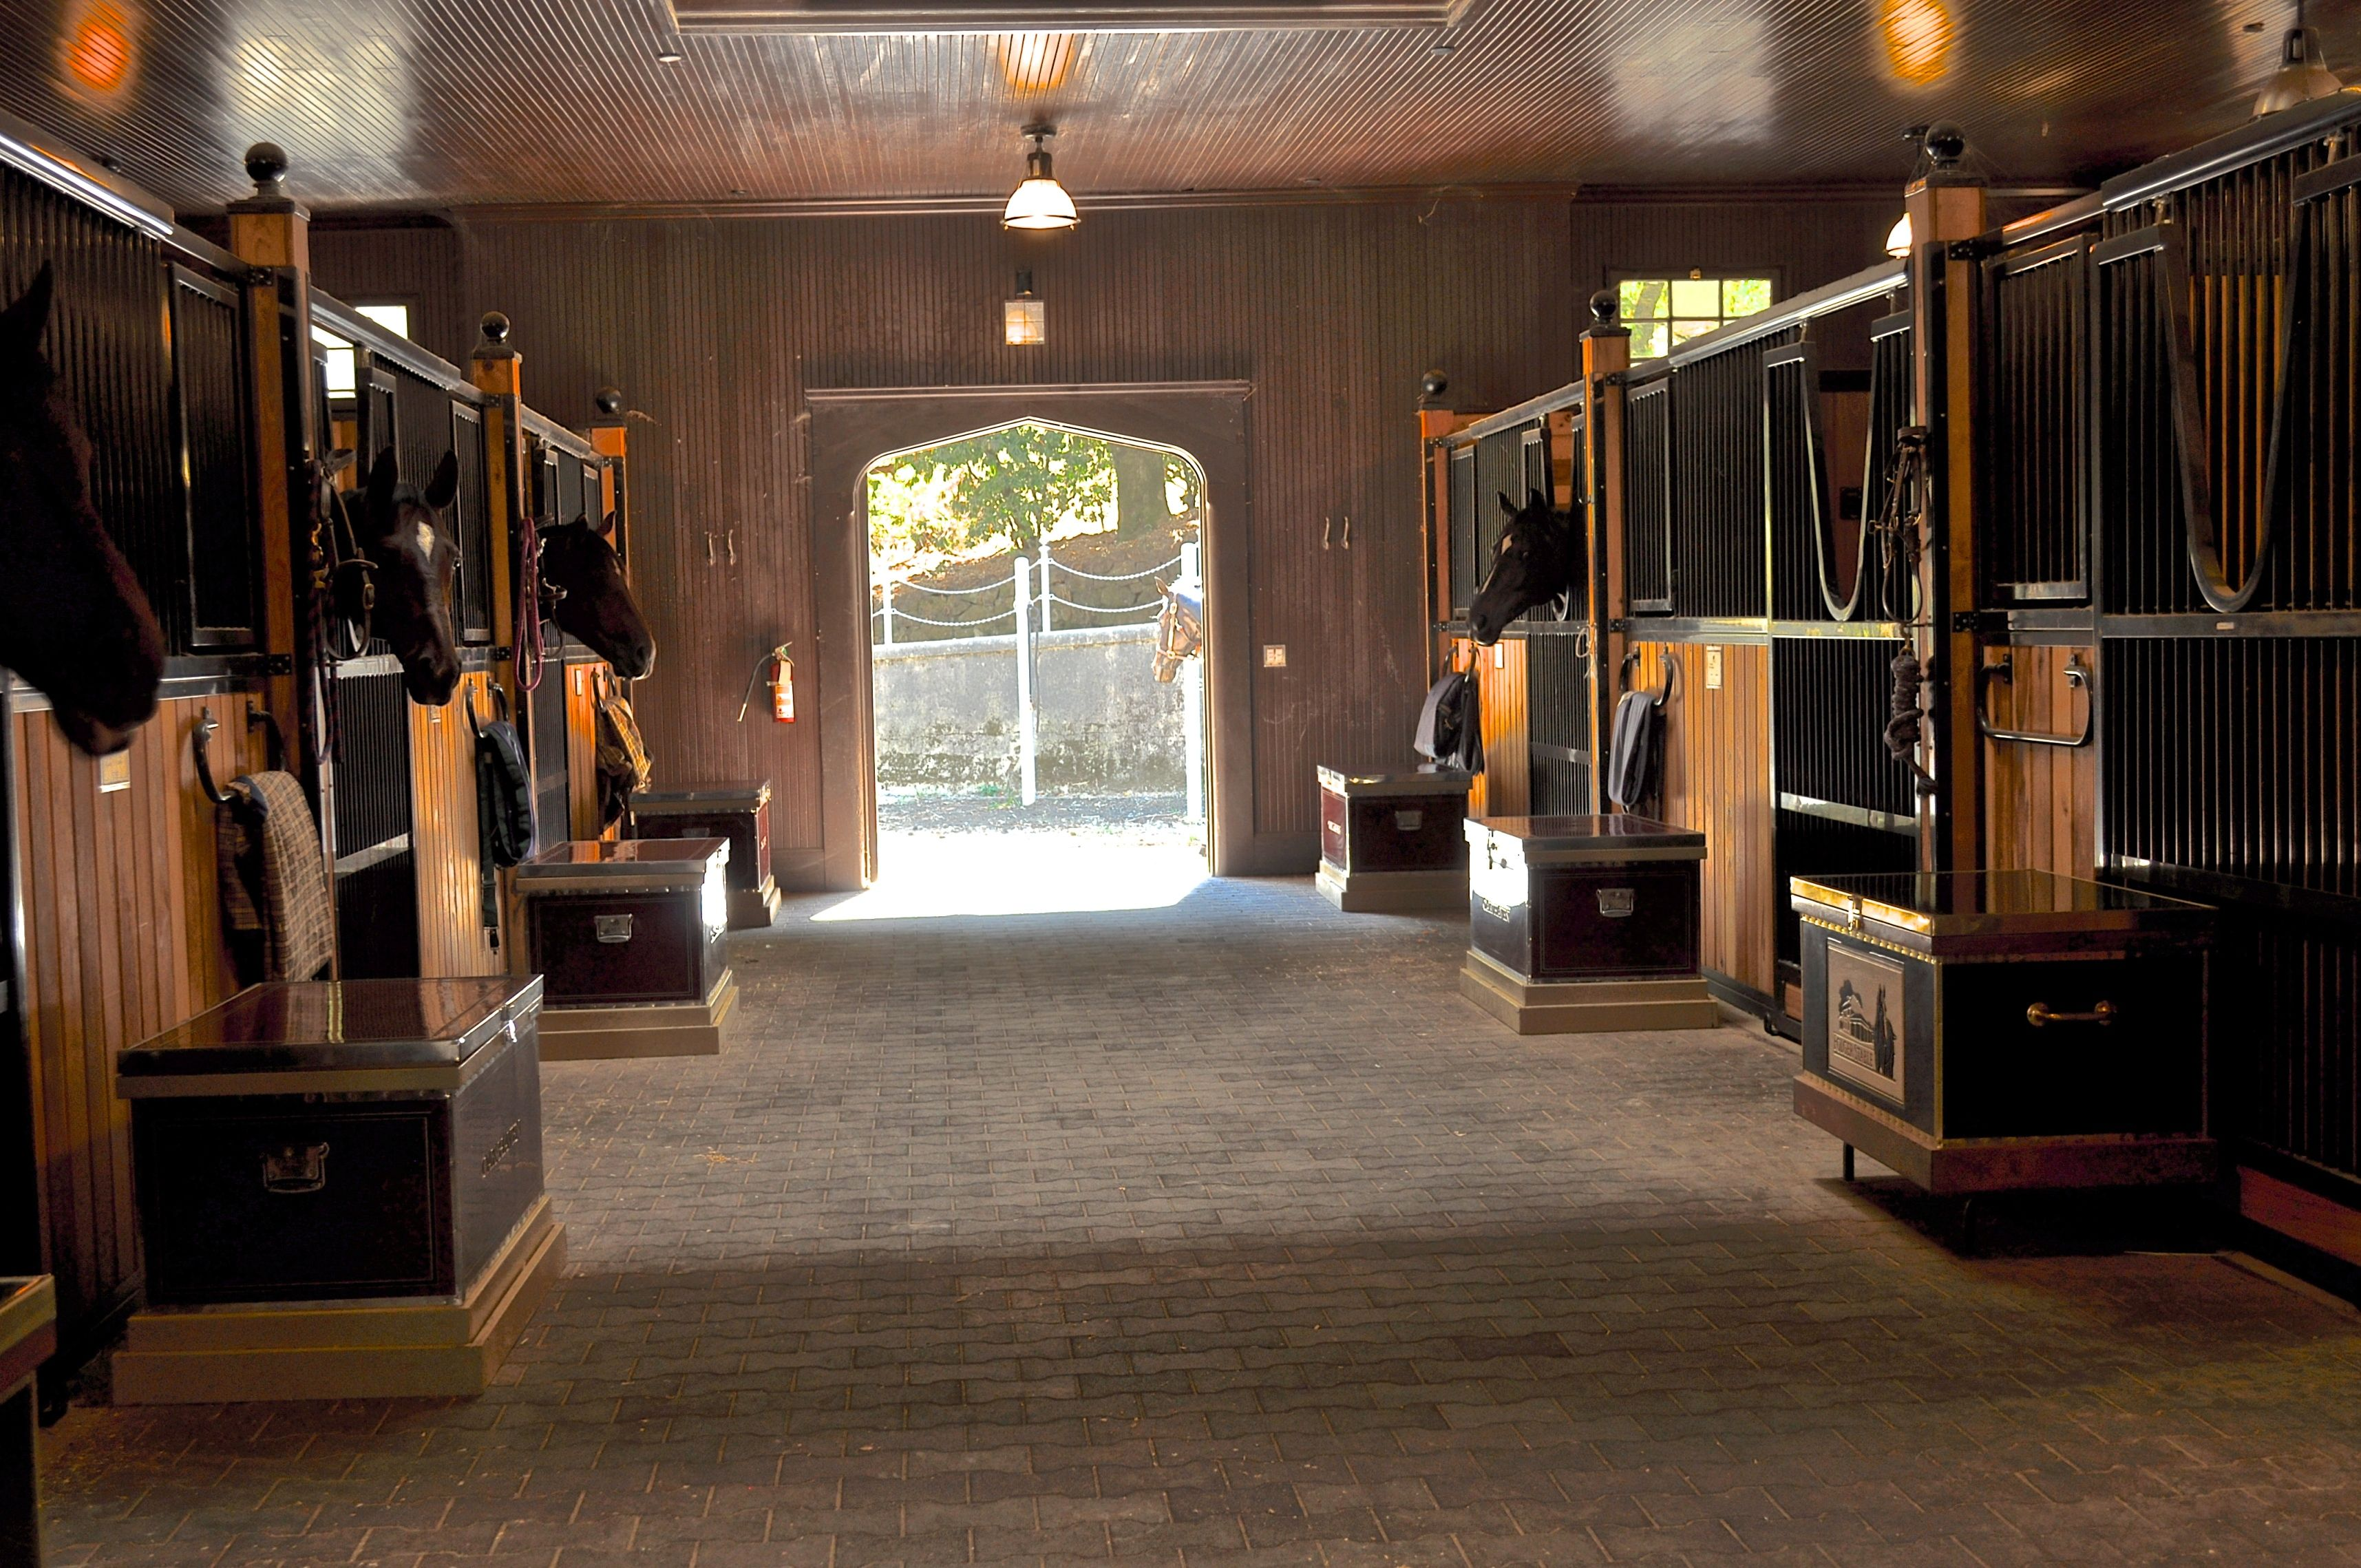 Barn Renovations After An Extensive Renovation At The Folgers Estate Stable In